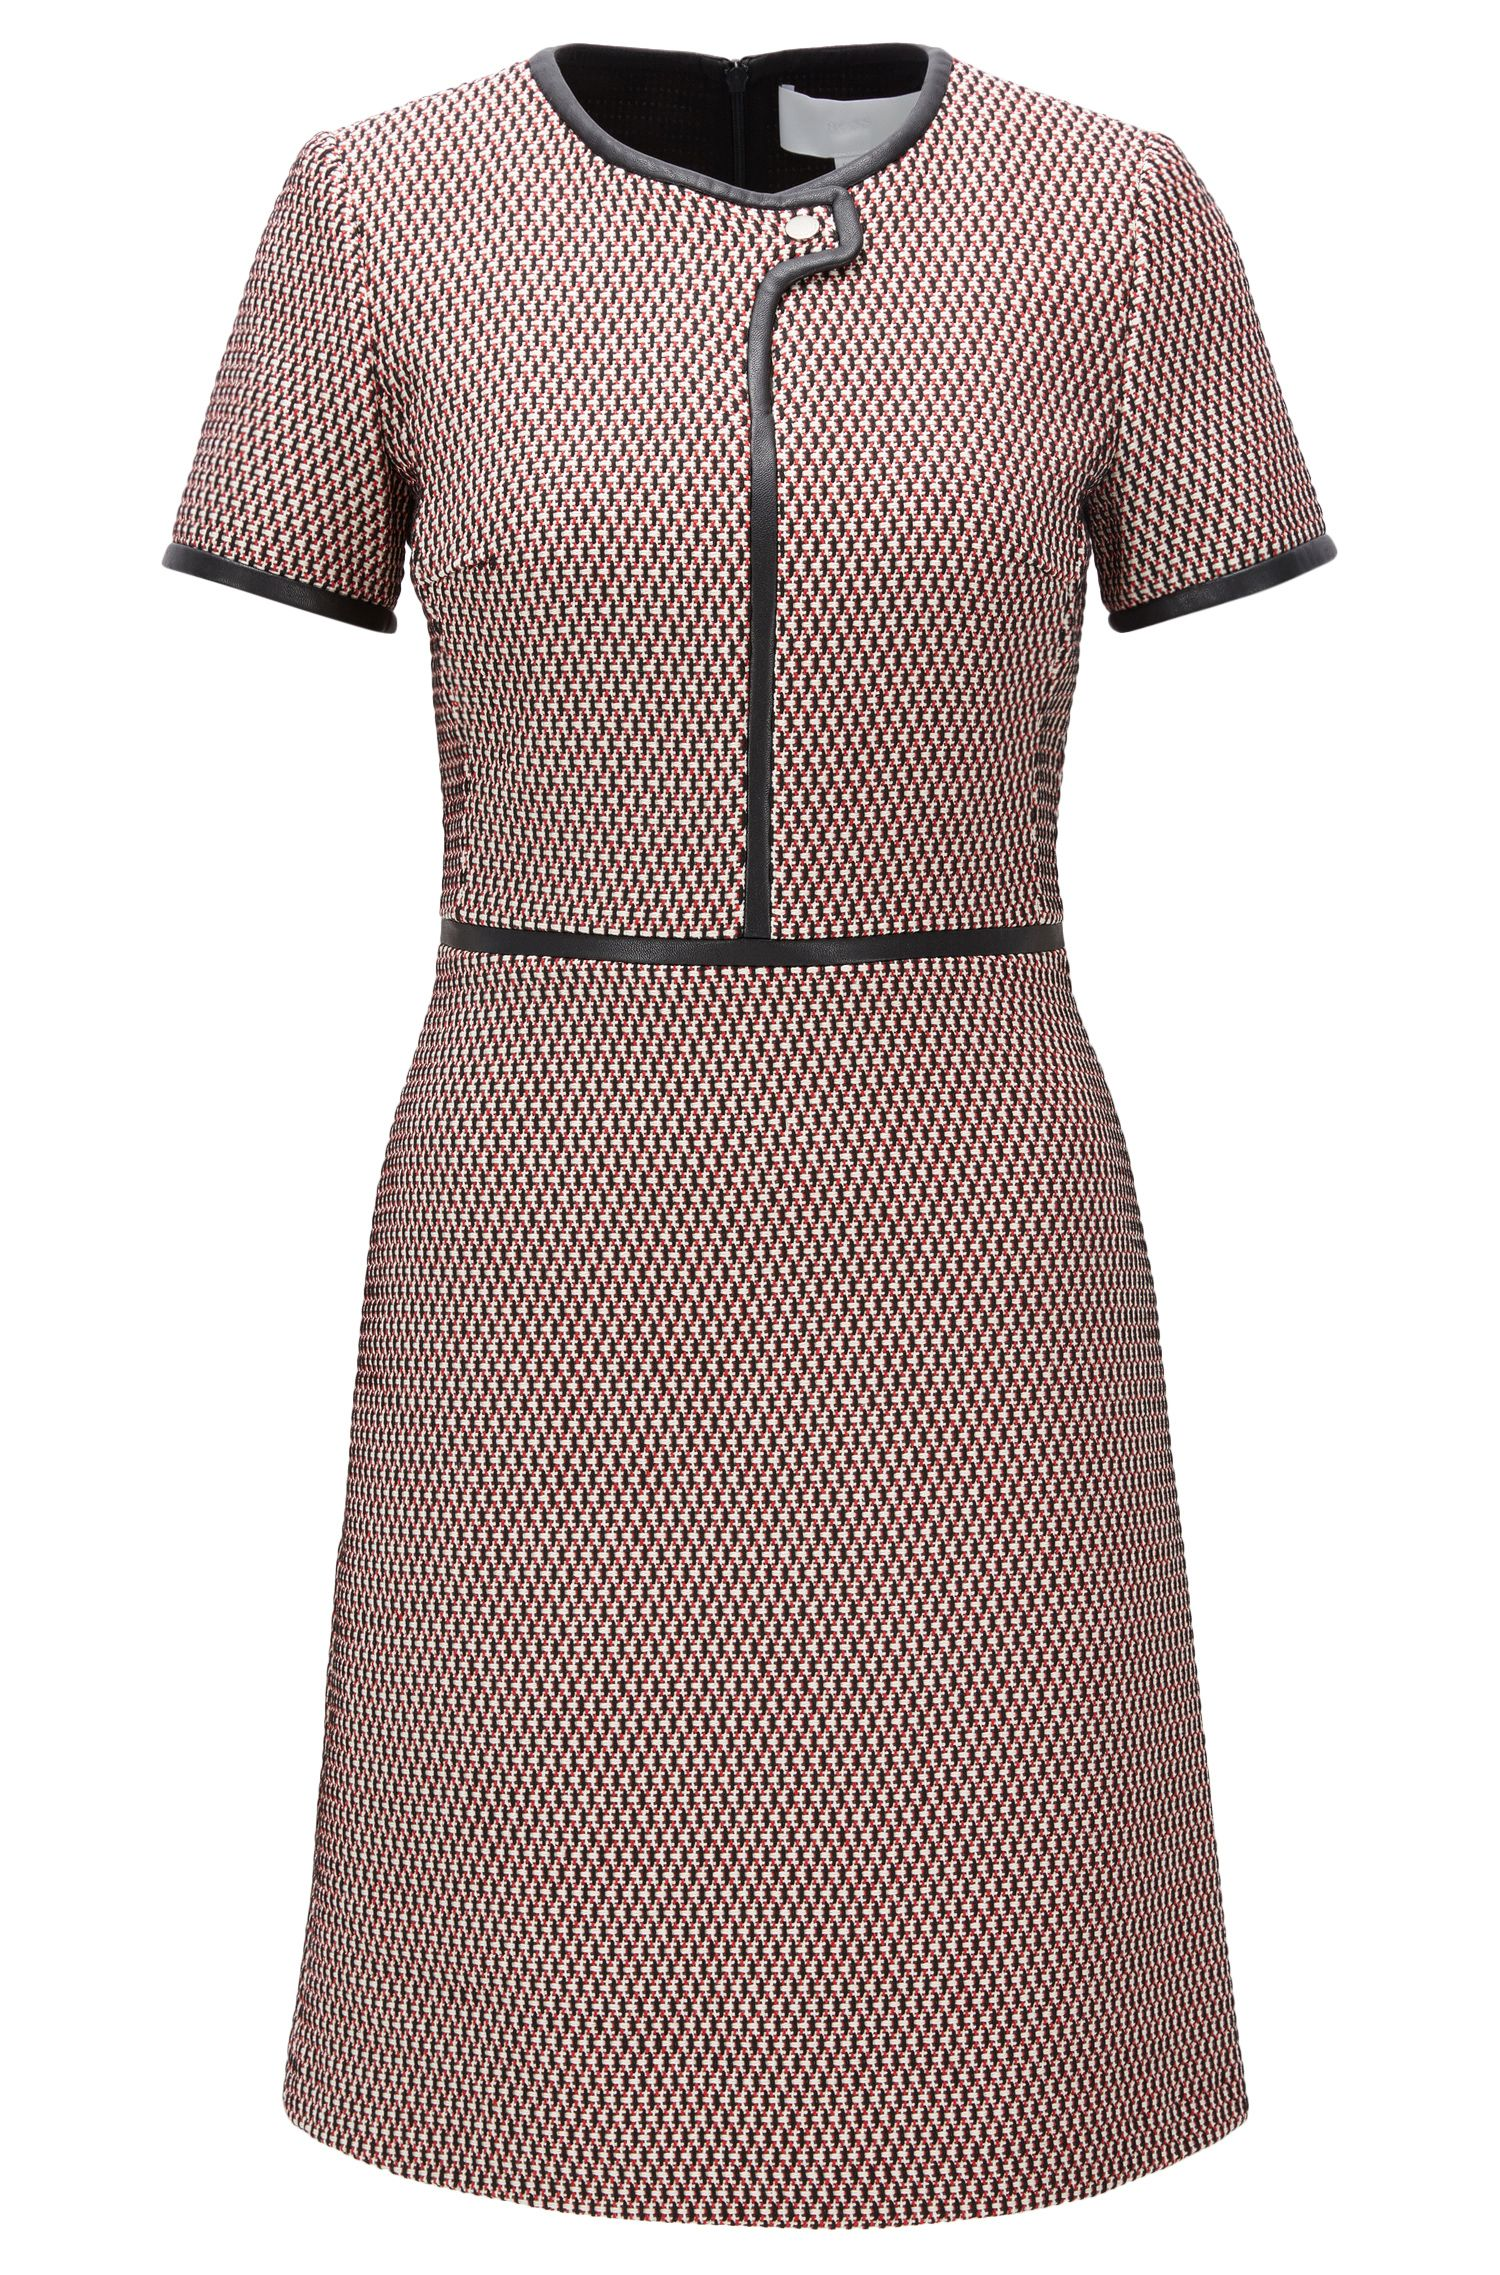 'Dagardi' | Dobby-Knit Cotton Blend Dress